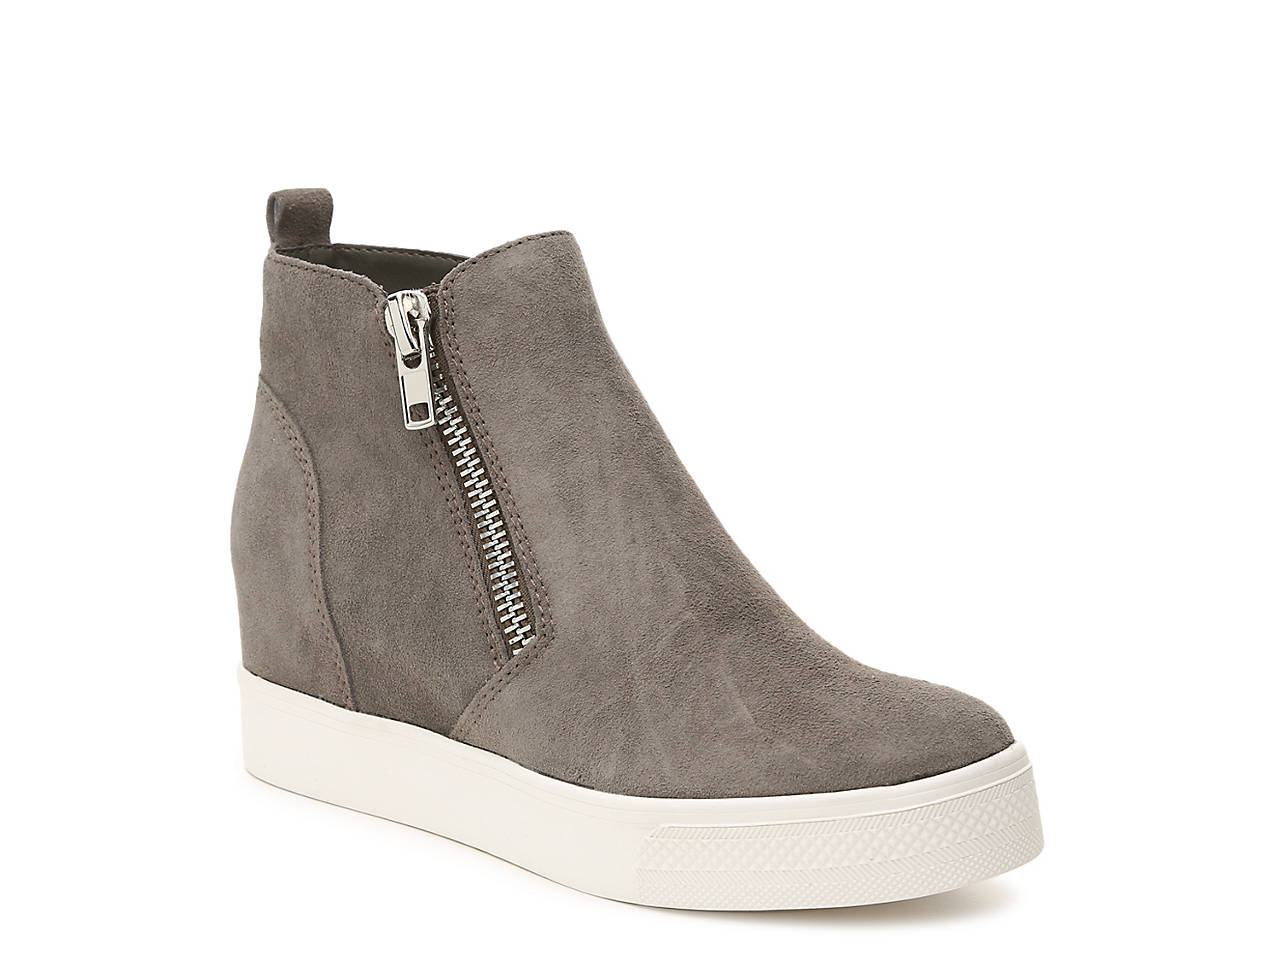 a4525e133b Steve Madden Wedgie Wedge Sneaker Women's Shoes | DSW